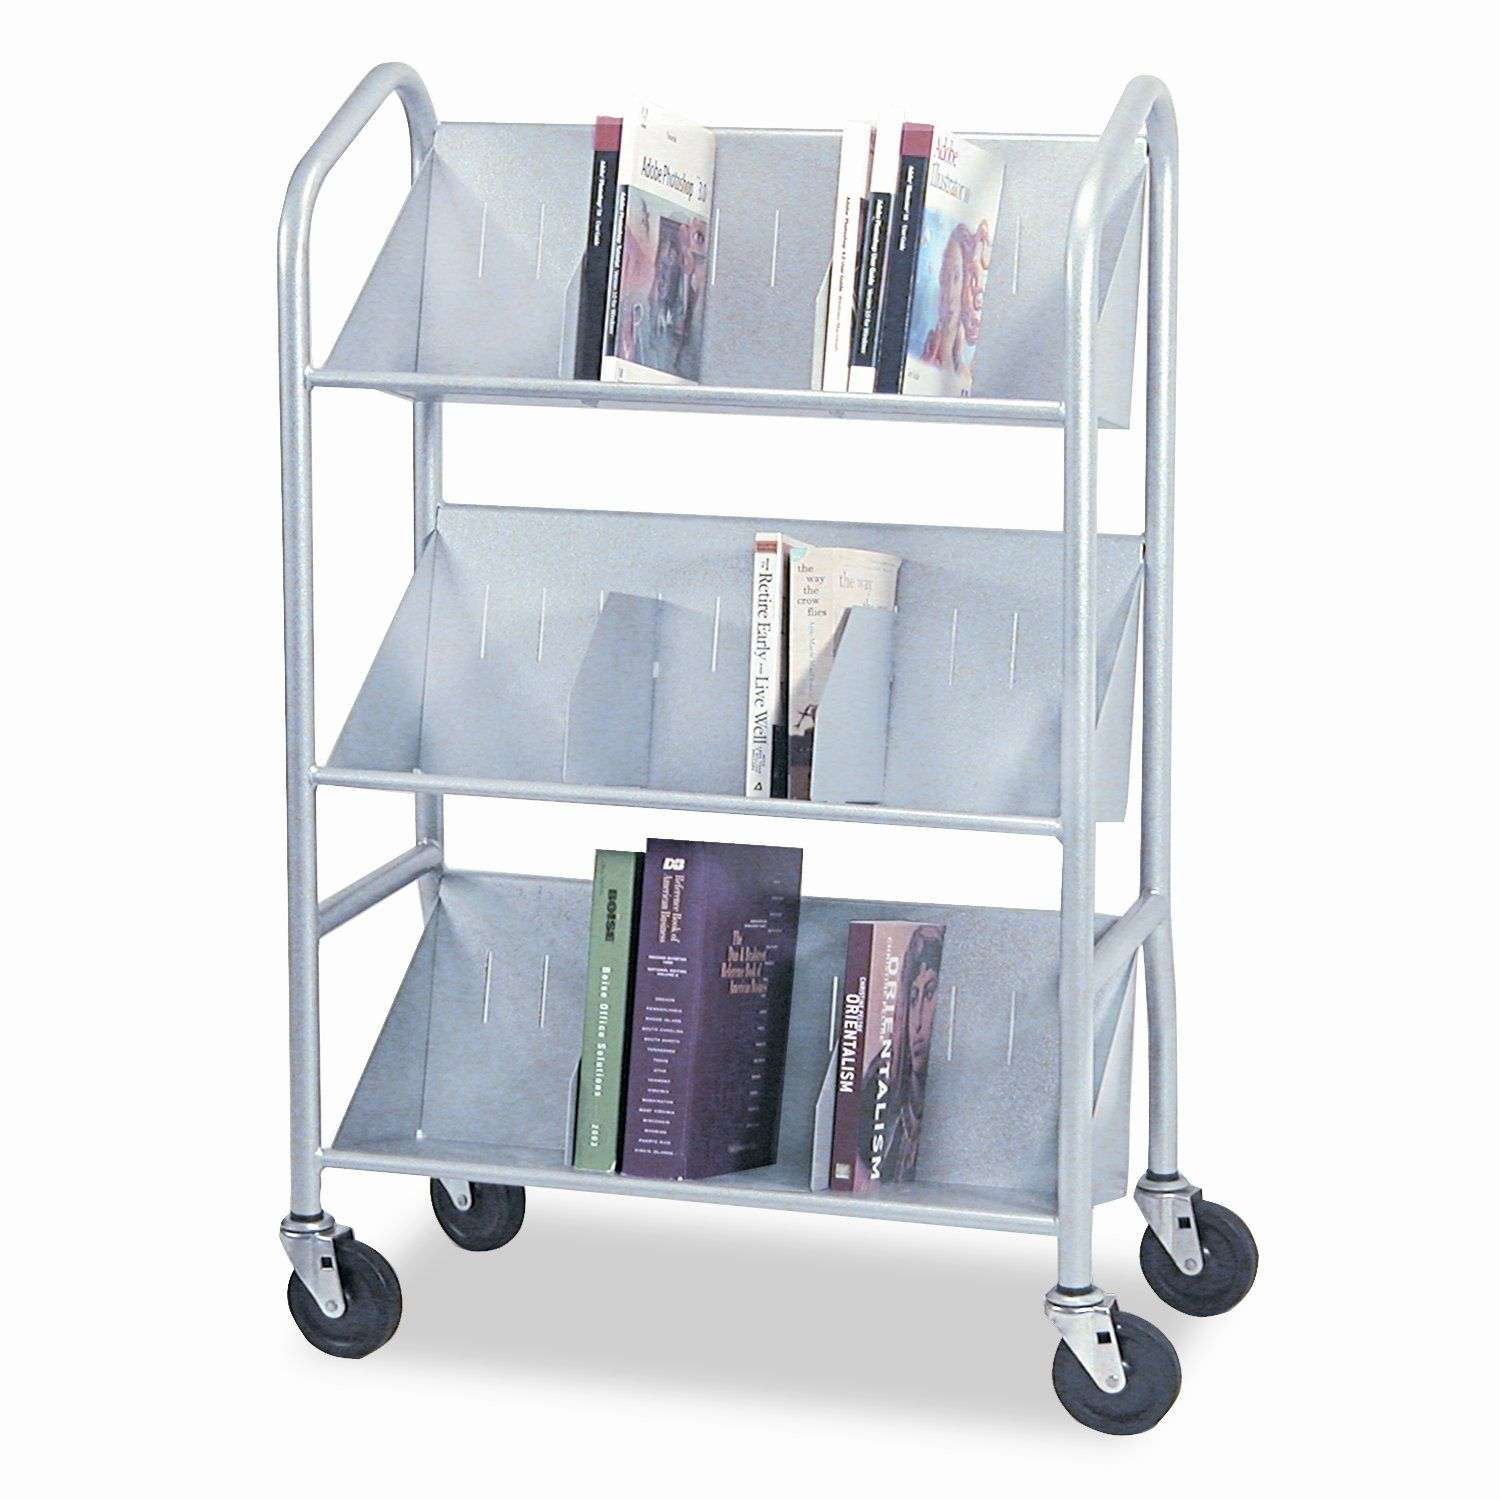 Sloped-Shelf Book Cart | Products | Pinterest | Products